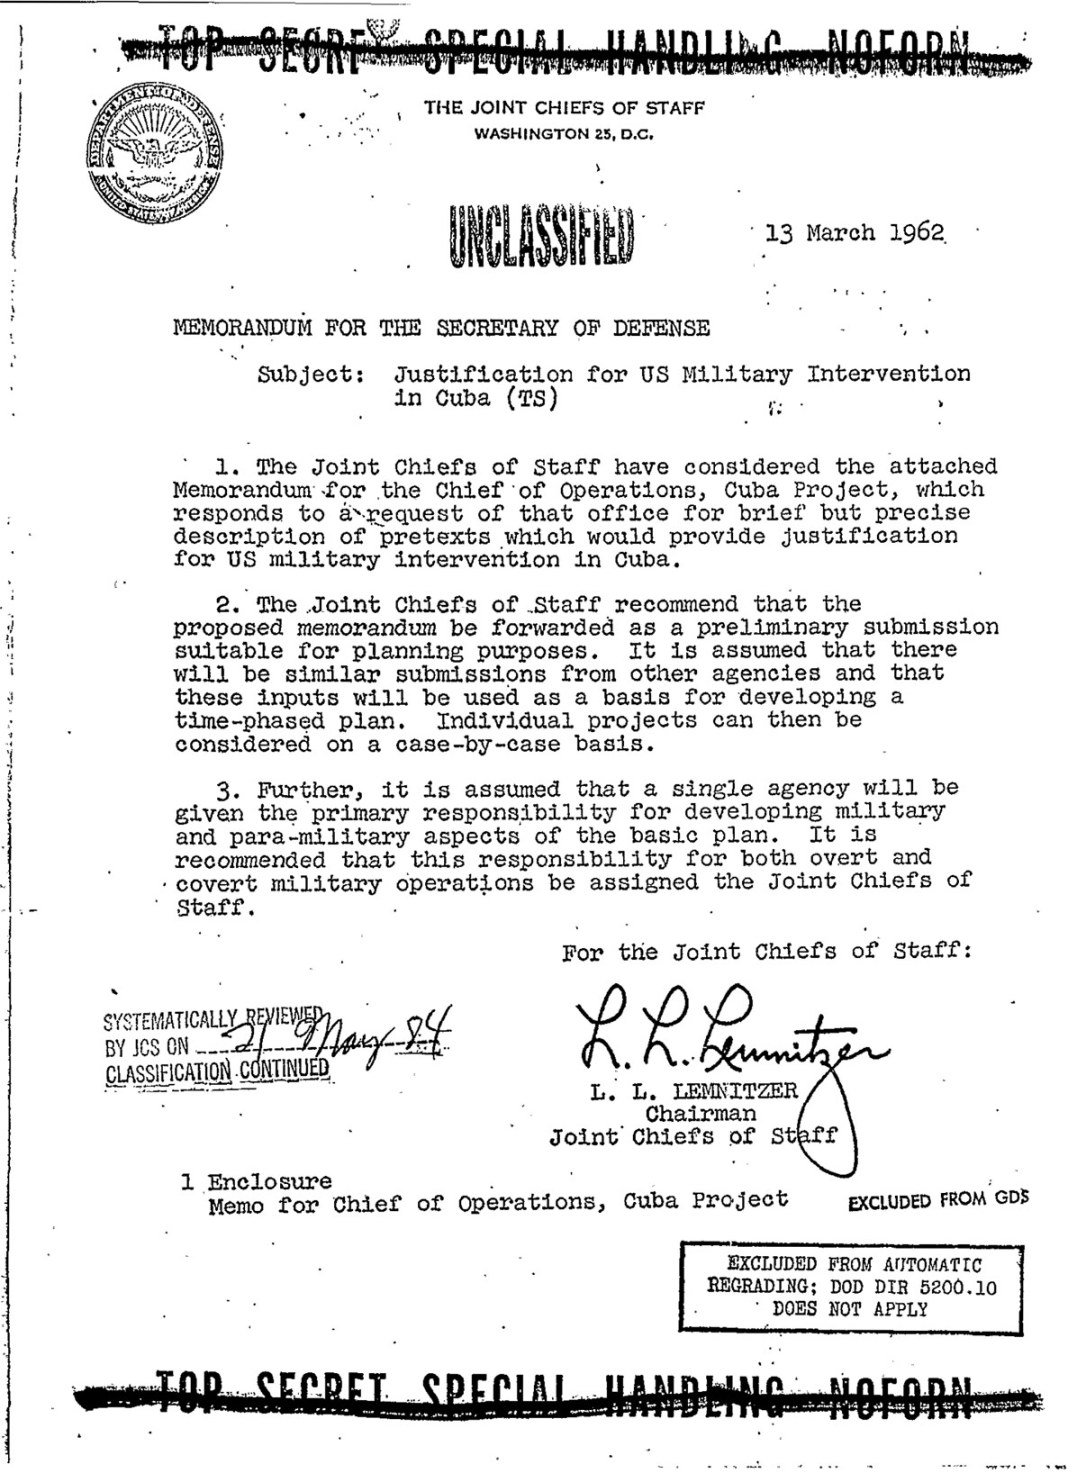 The first page of the Operation Northwoods memo